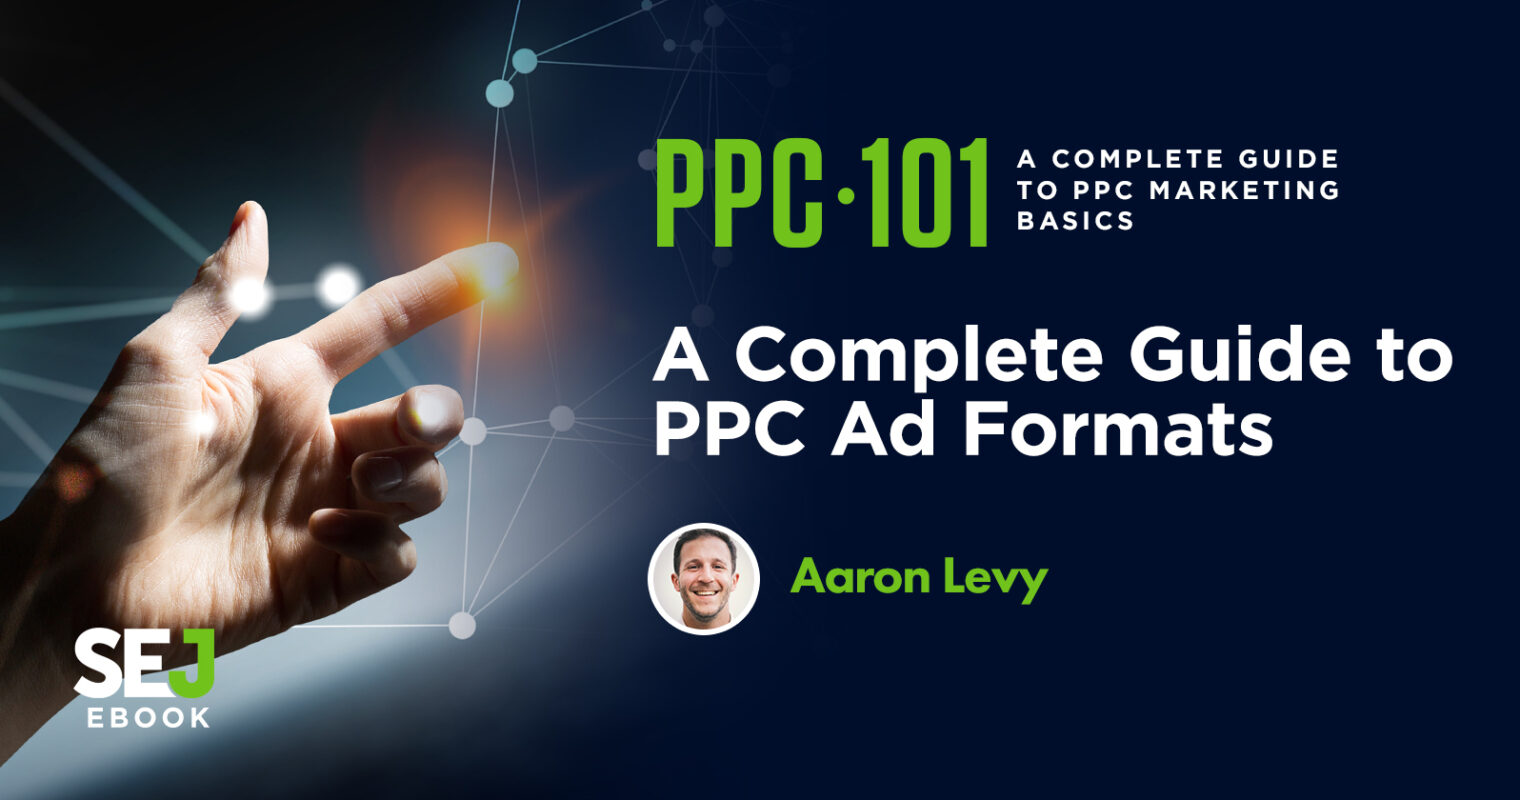 A Complete Guide to PPC Ad Formats